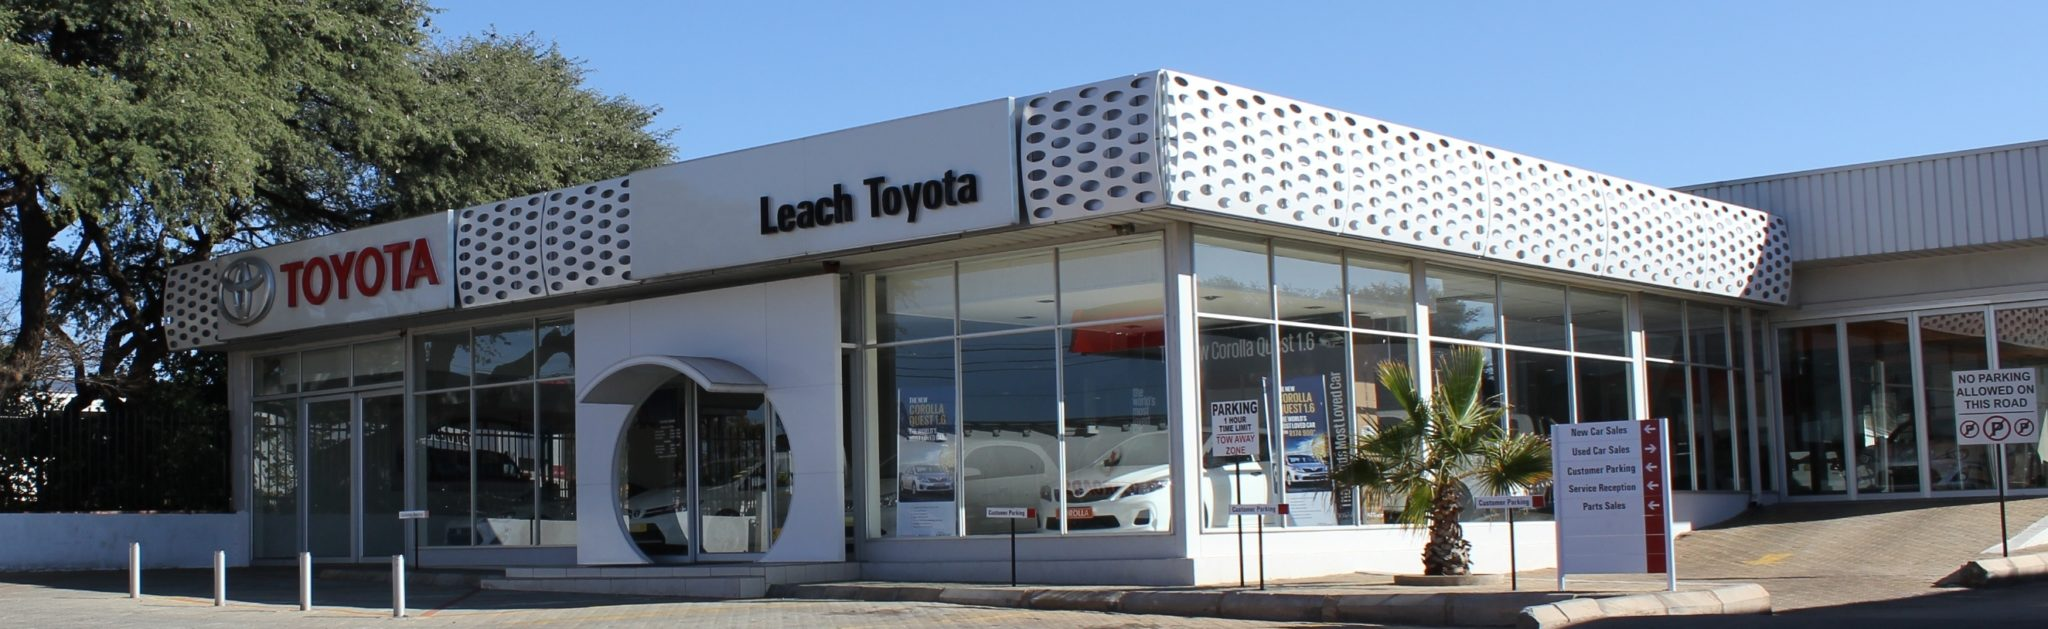 Leach Toyota Dealership